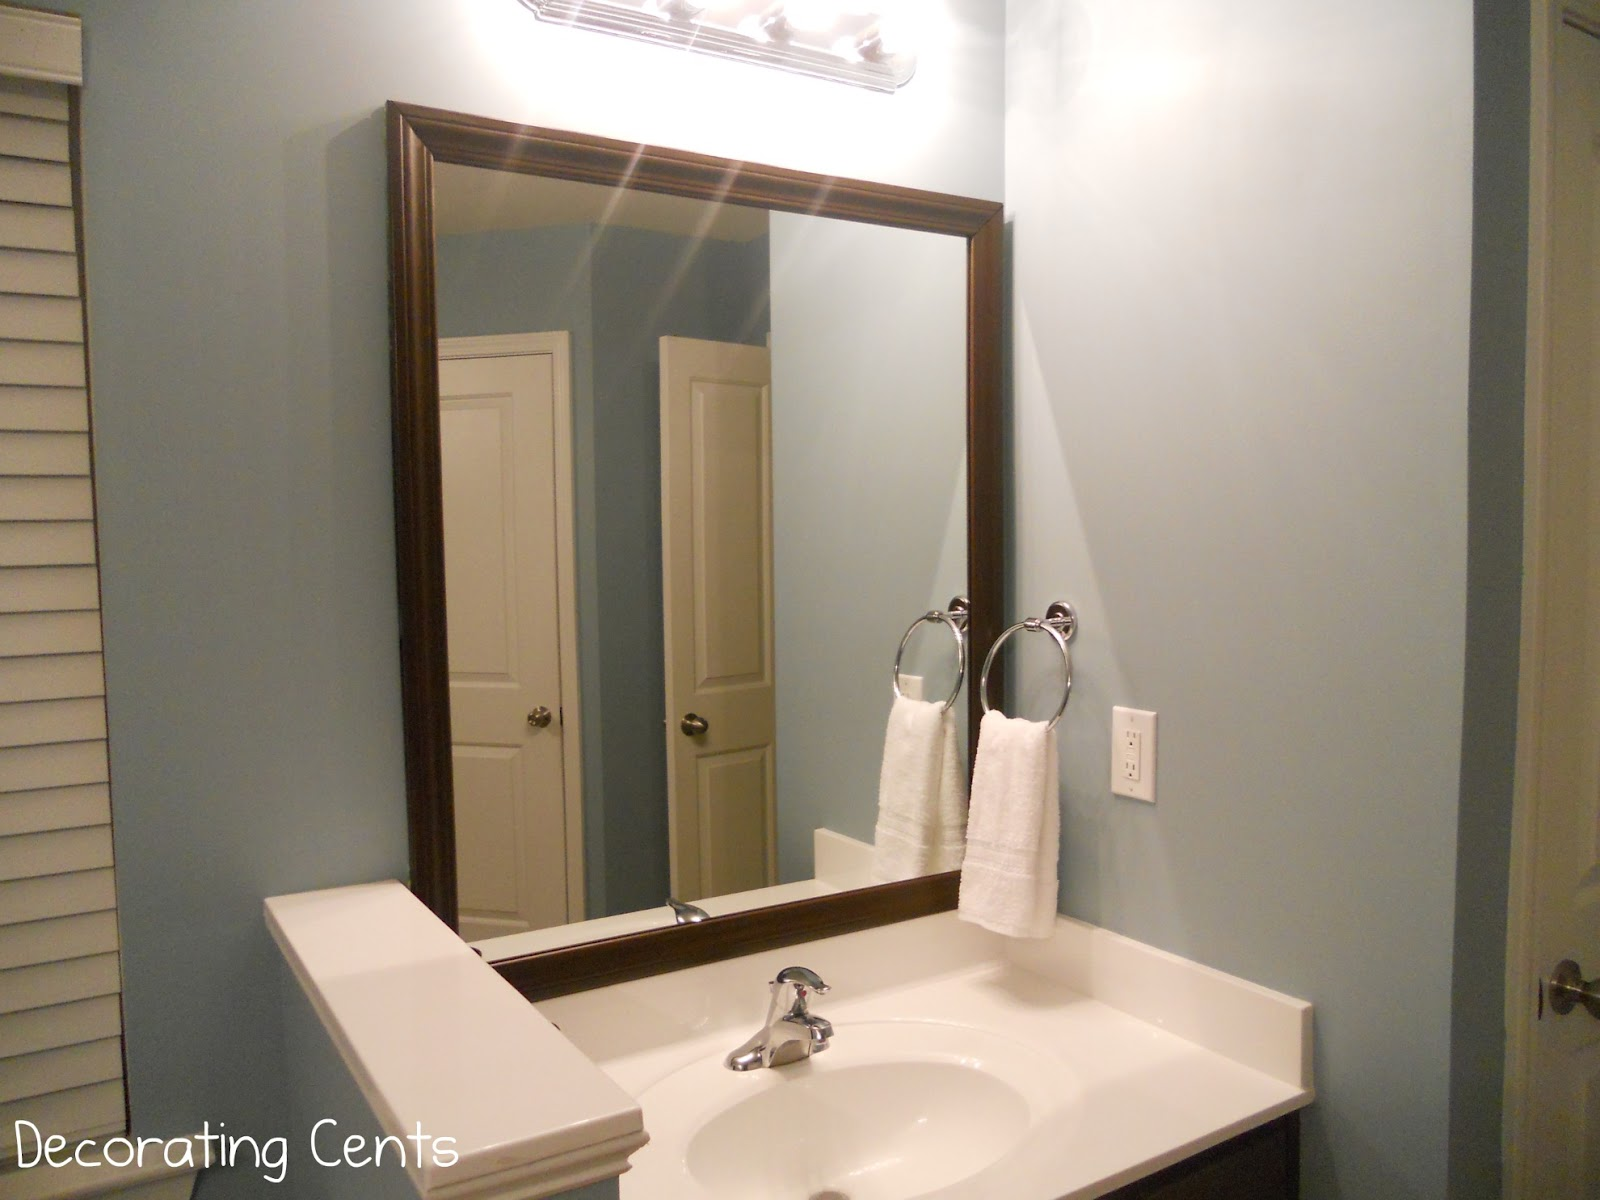 Bathroom Wall Mirrors: Decorating Cents: Framing The Bathroom Mirrors